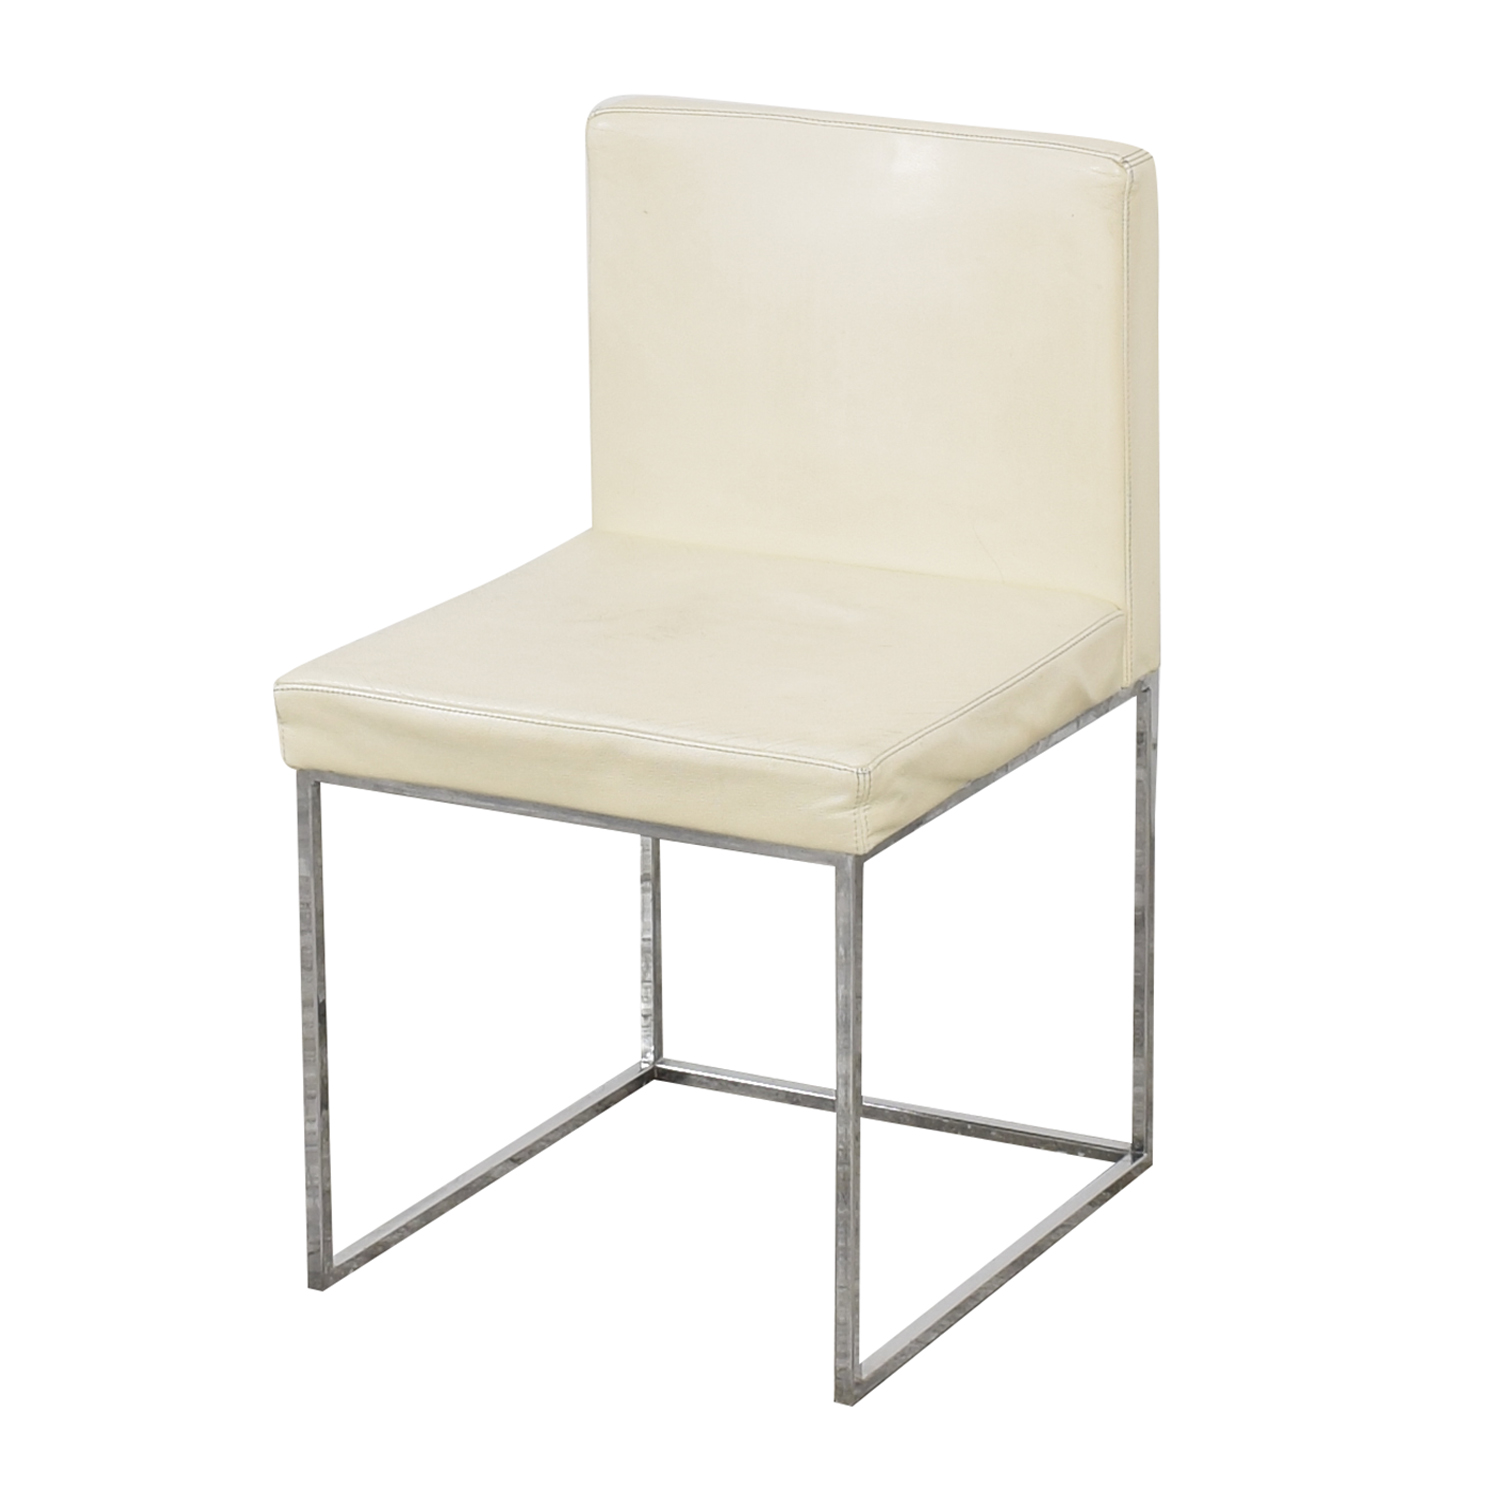 shop Calligaris Calligaris Even Plus Leather Chairs online